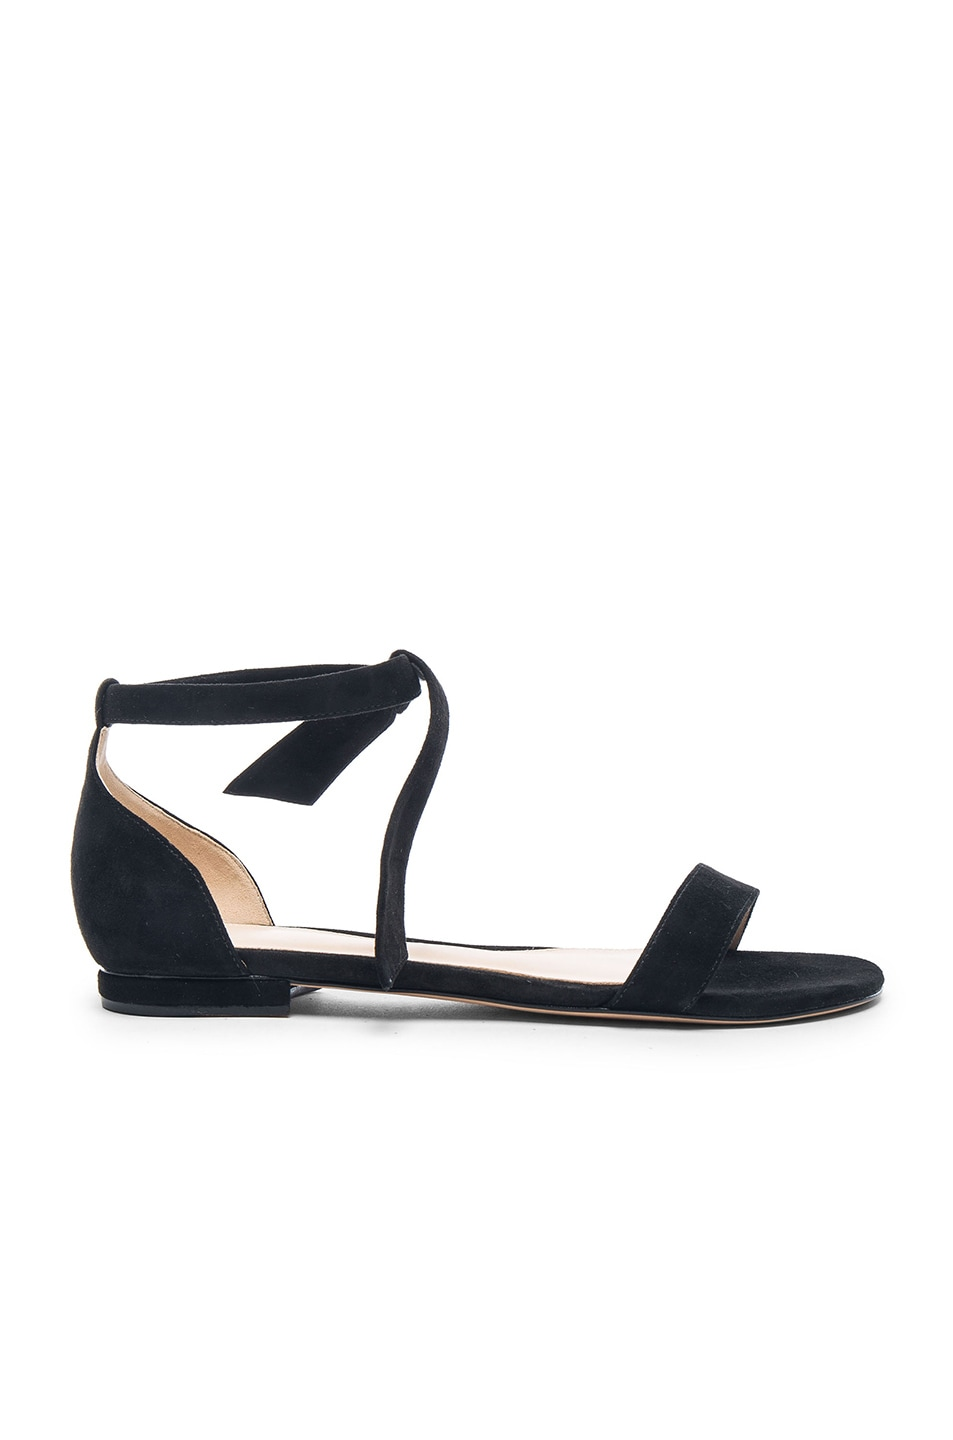 Image 1 of Alexandre Birman Clarita Sandals in Black Suede